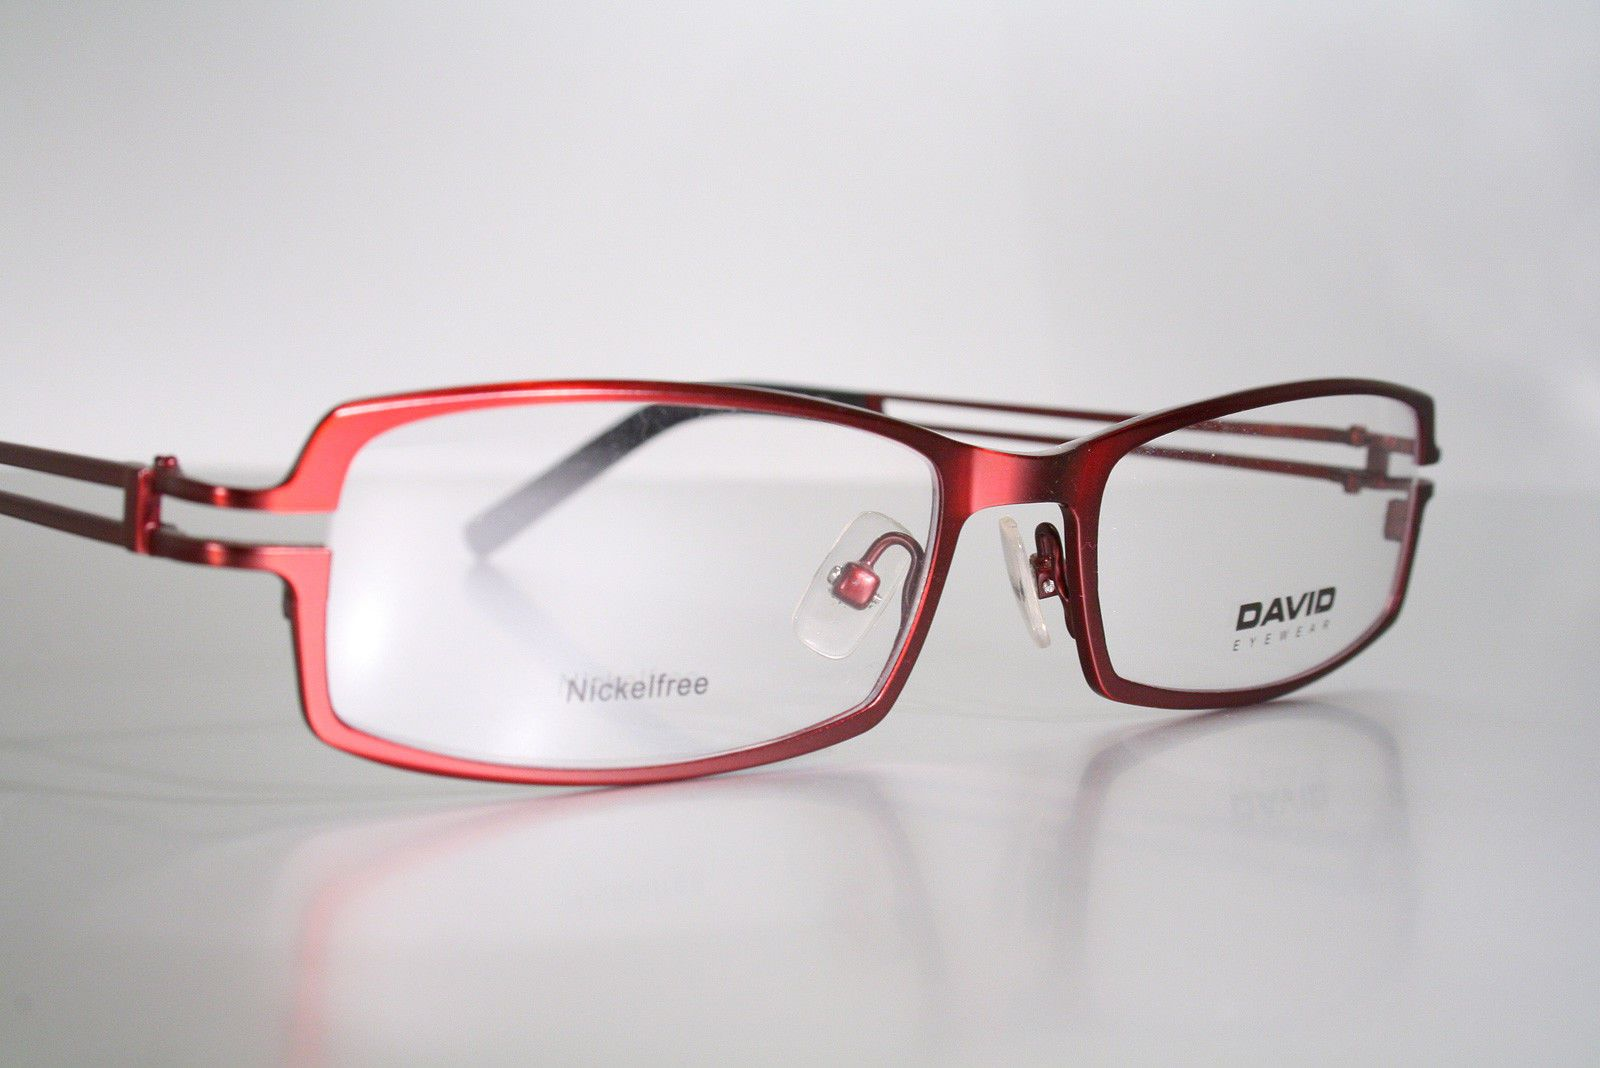 788a324ef64 Ruby Red DAVID EYEWEAR Unworn Nickel Free Manly Silver Fox Men s Eyeglass  Frames